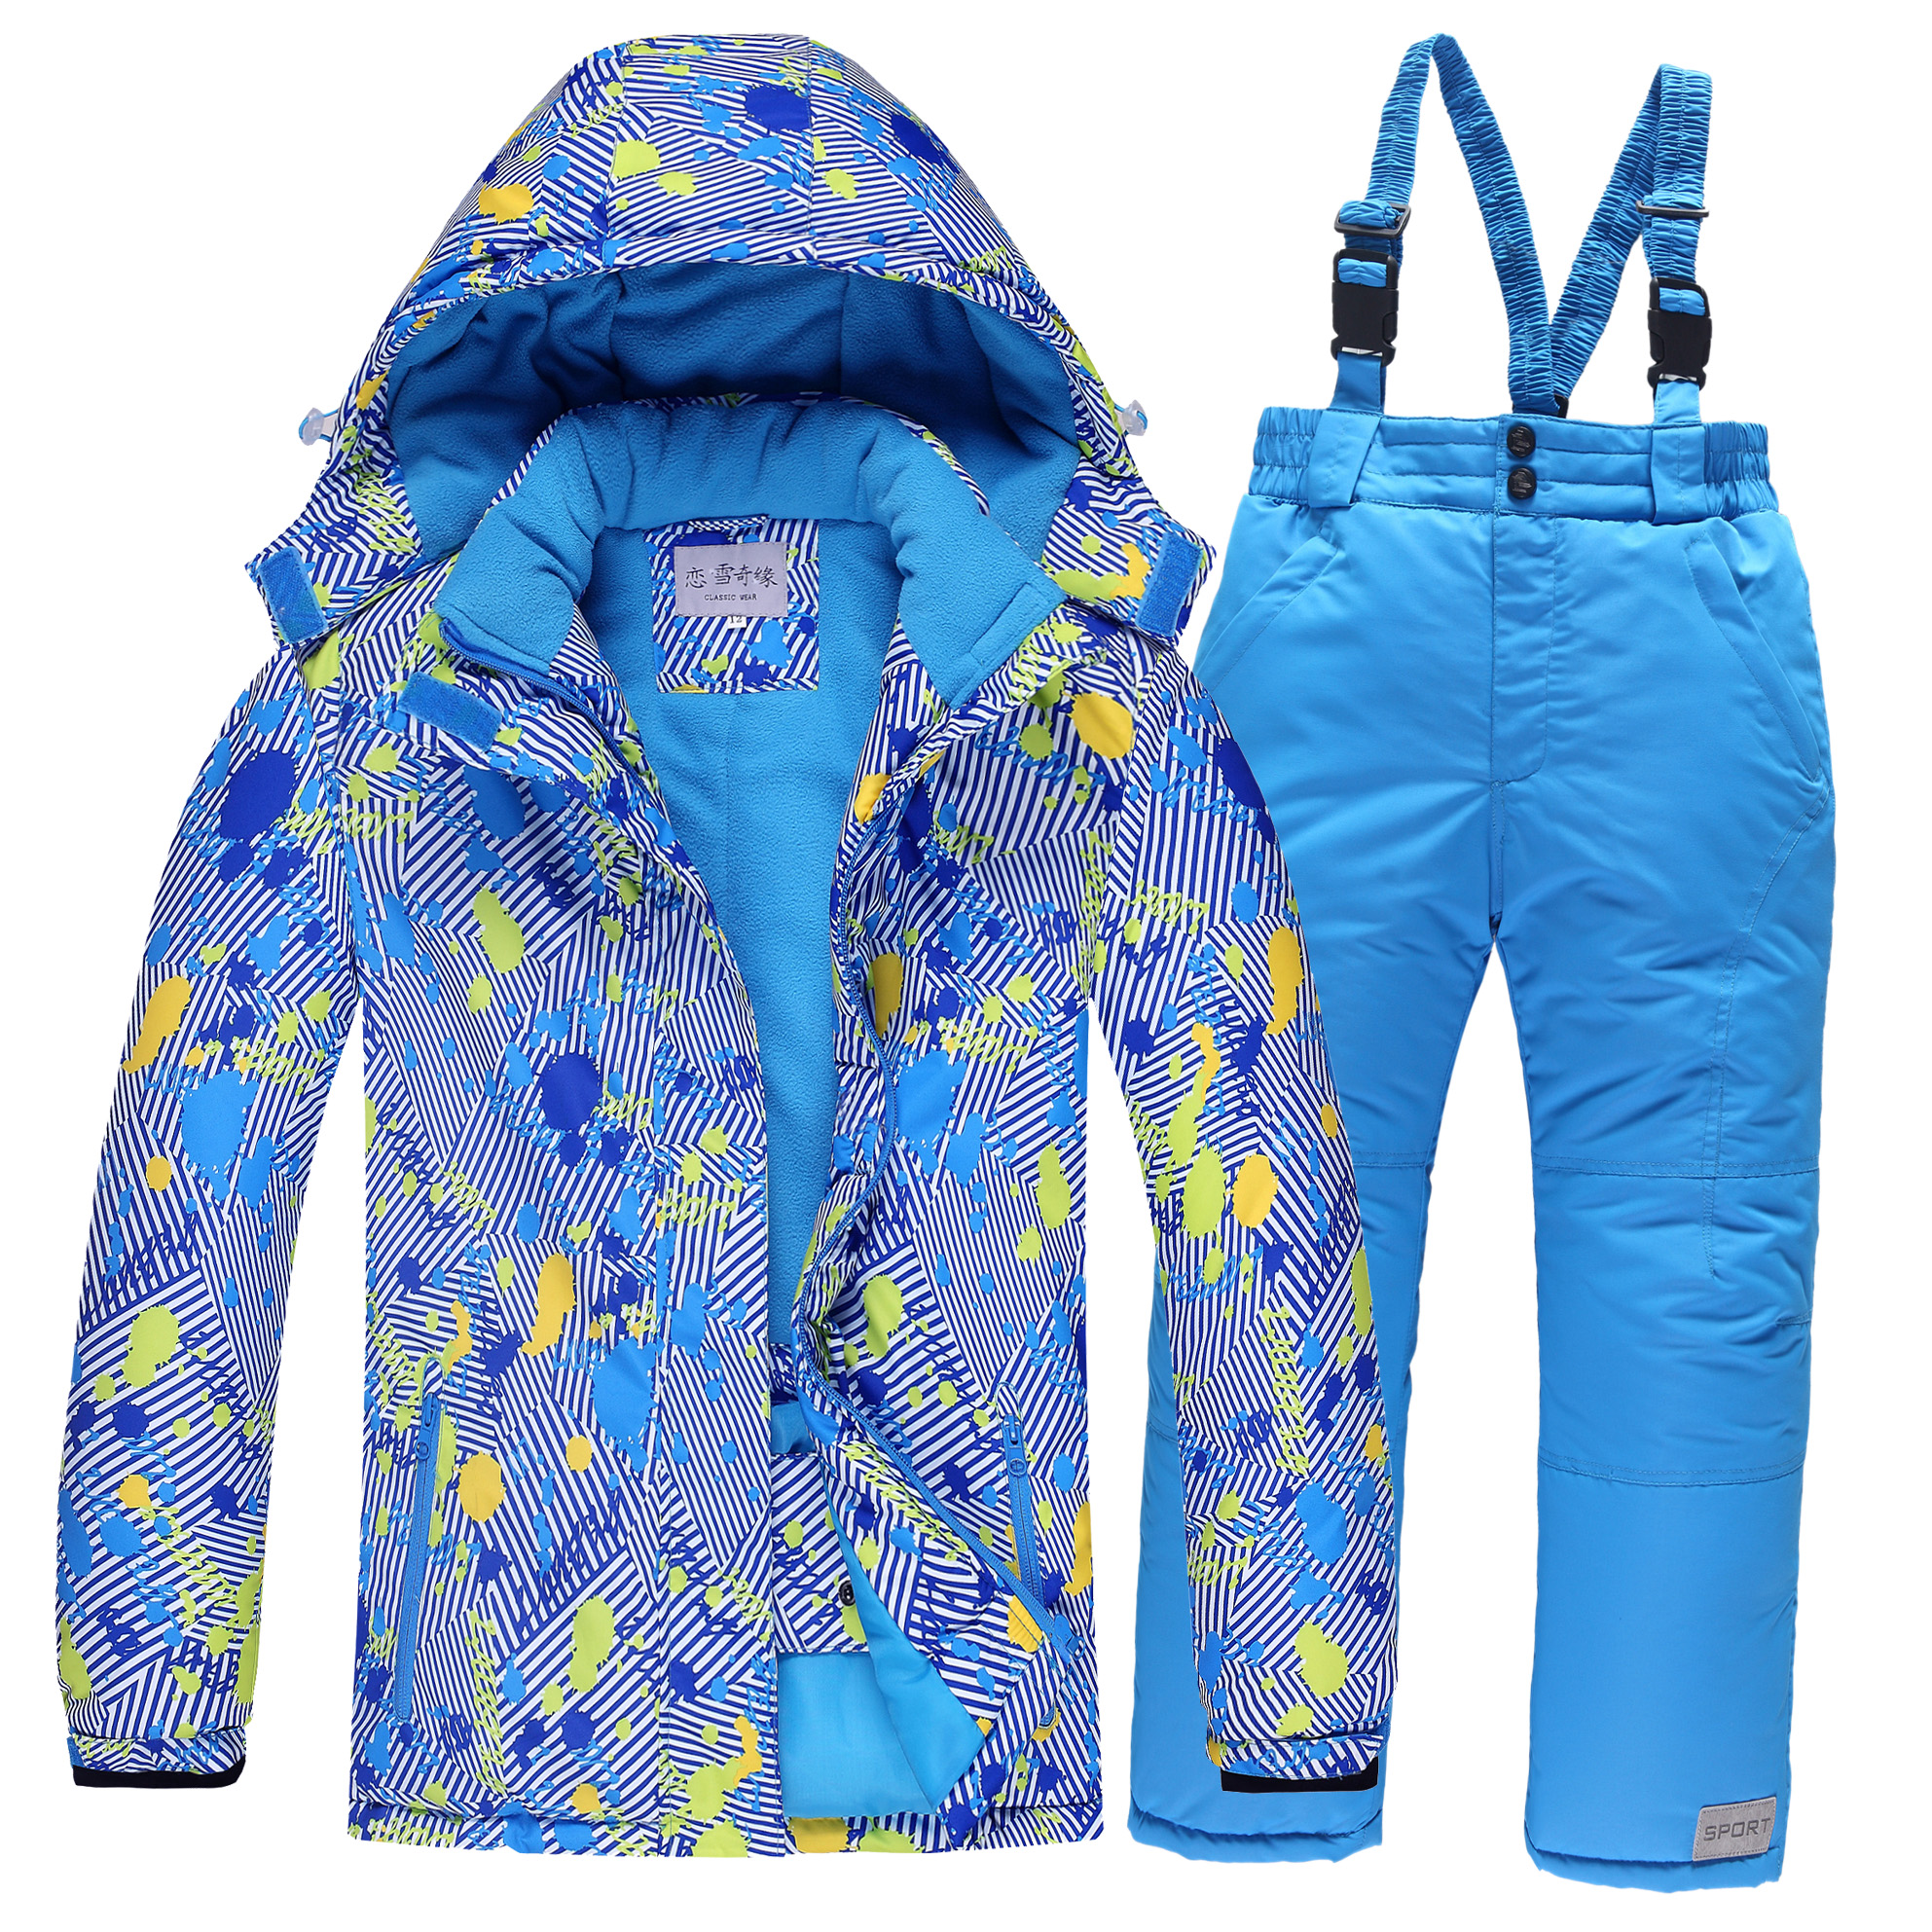 Girls or Boys Waterproof Ski Suit Kids Ski Jacket and Children Pants Snow Windproof Warmth Thickened Winter Clothes -30 Degree girls or boys waterproof ski suit kids ski jacket and children pants snow windproof warmth thickened winter clothes 30 degree